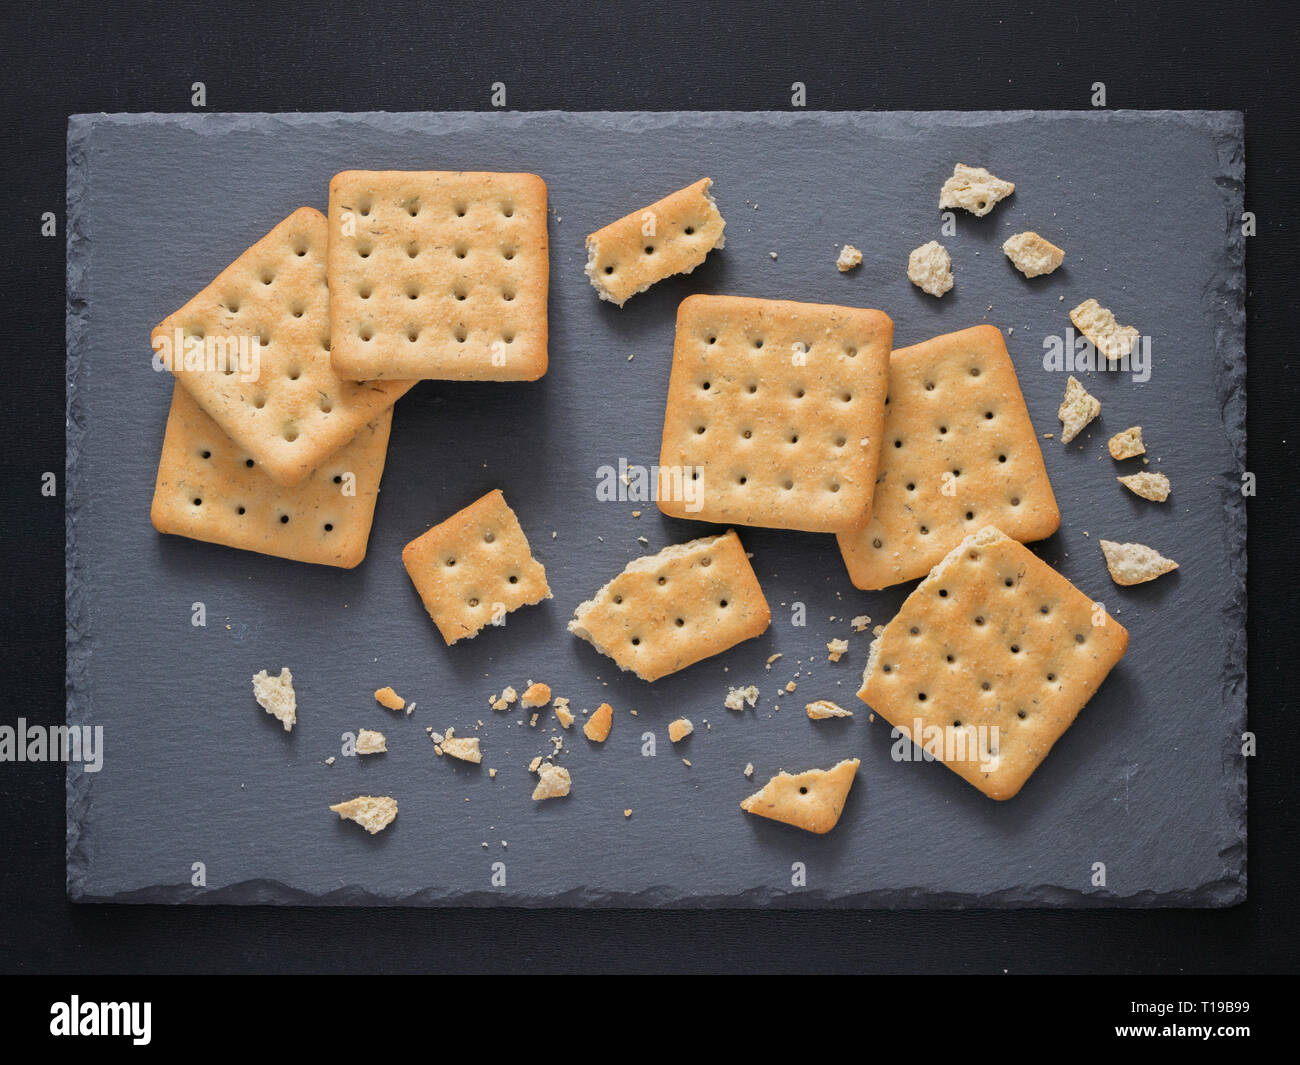 Square crackers with pieces and crumbs on slate gray background. Dry salt cracker cookies with fiber and dry spices. Top view or flat lay. Stock Photo